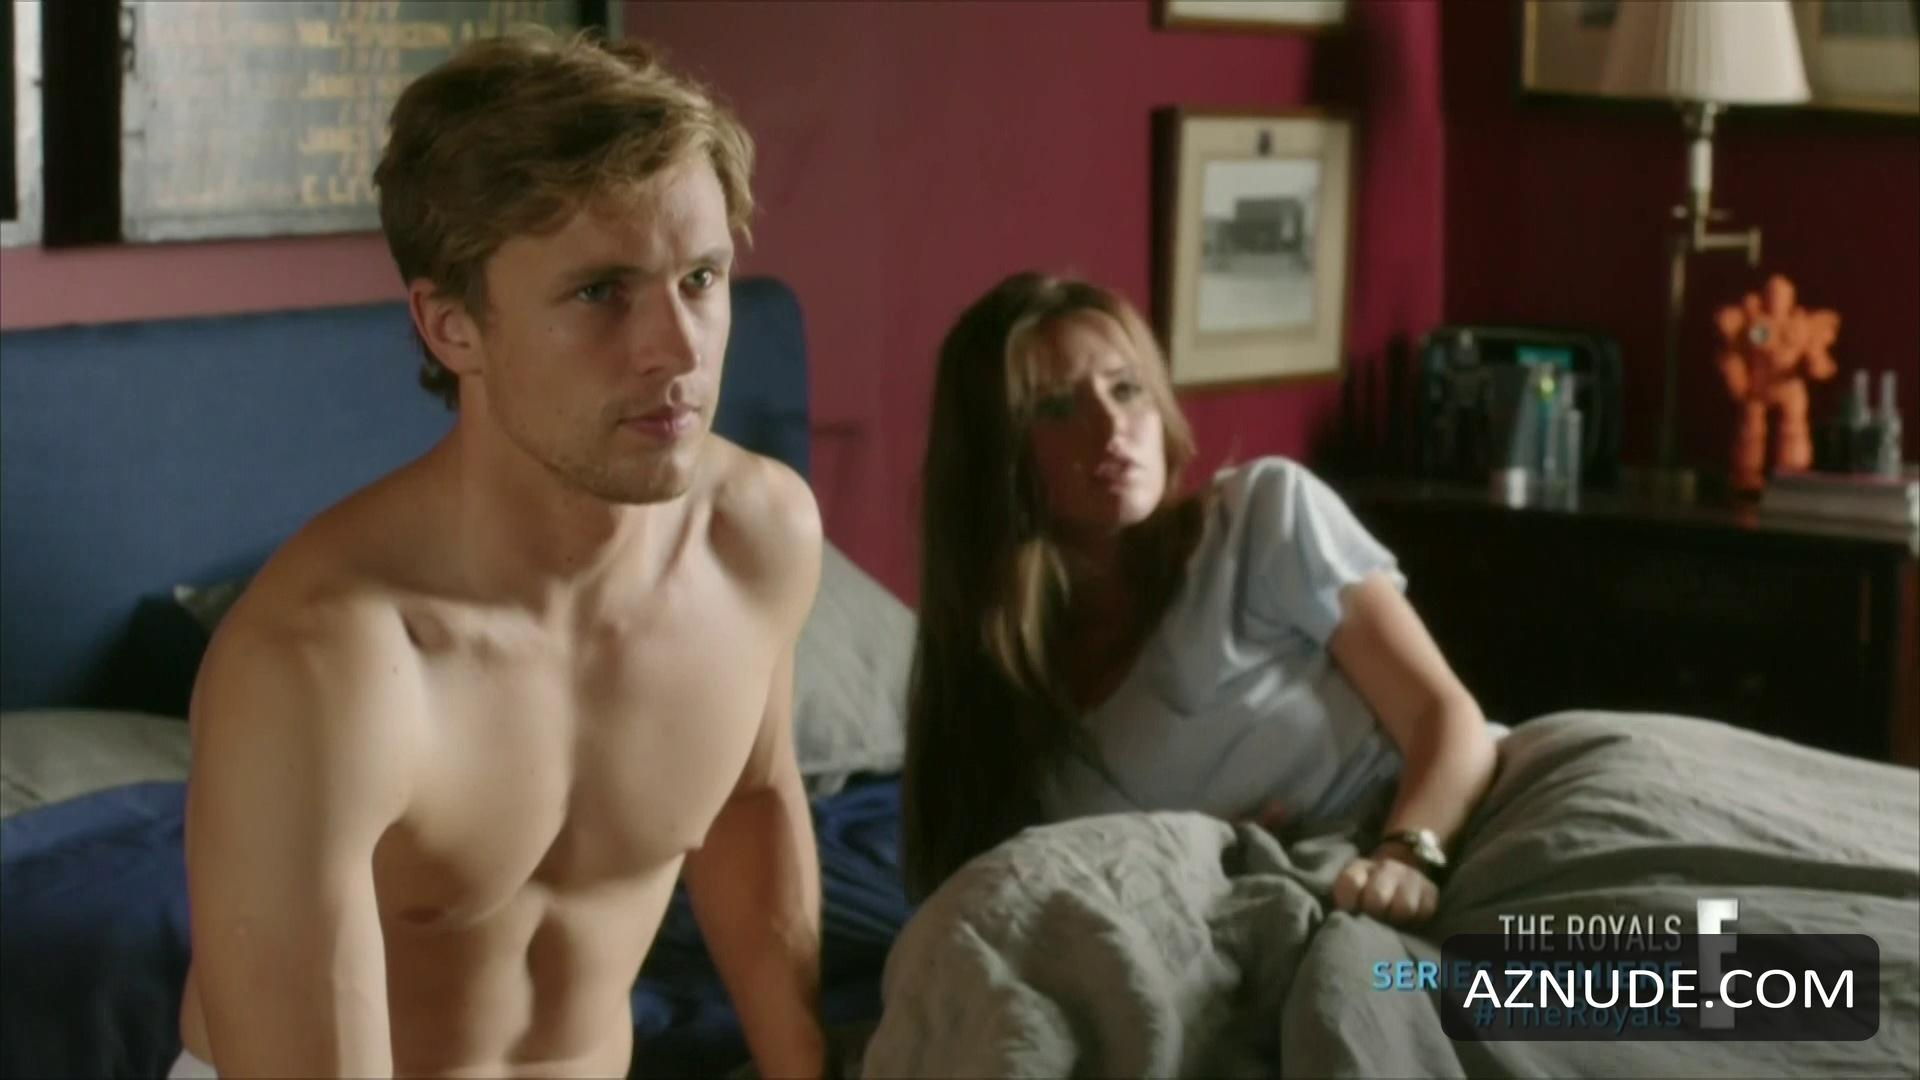 William moseley as peter naked